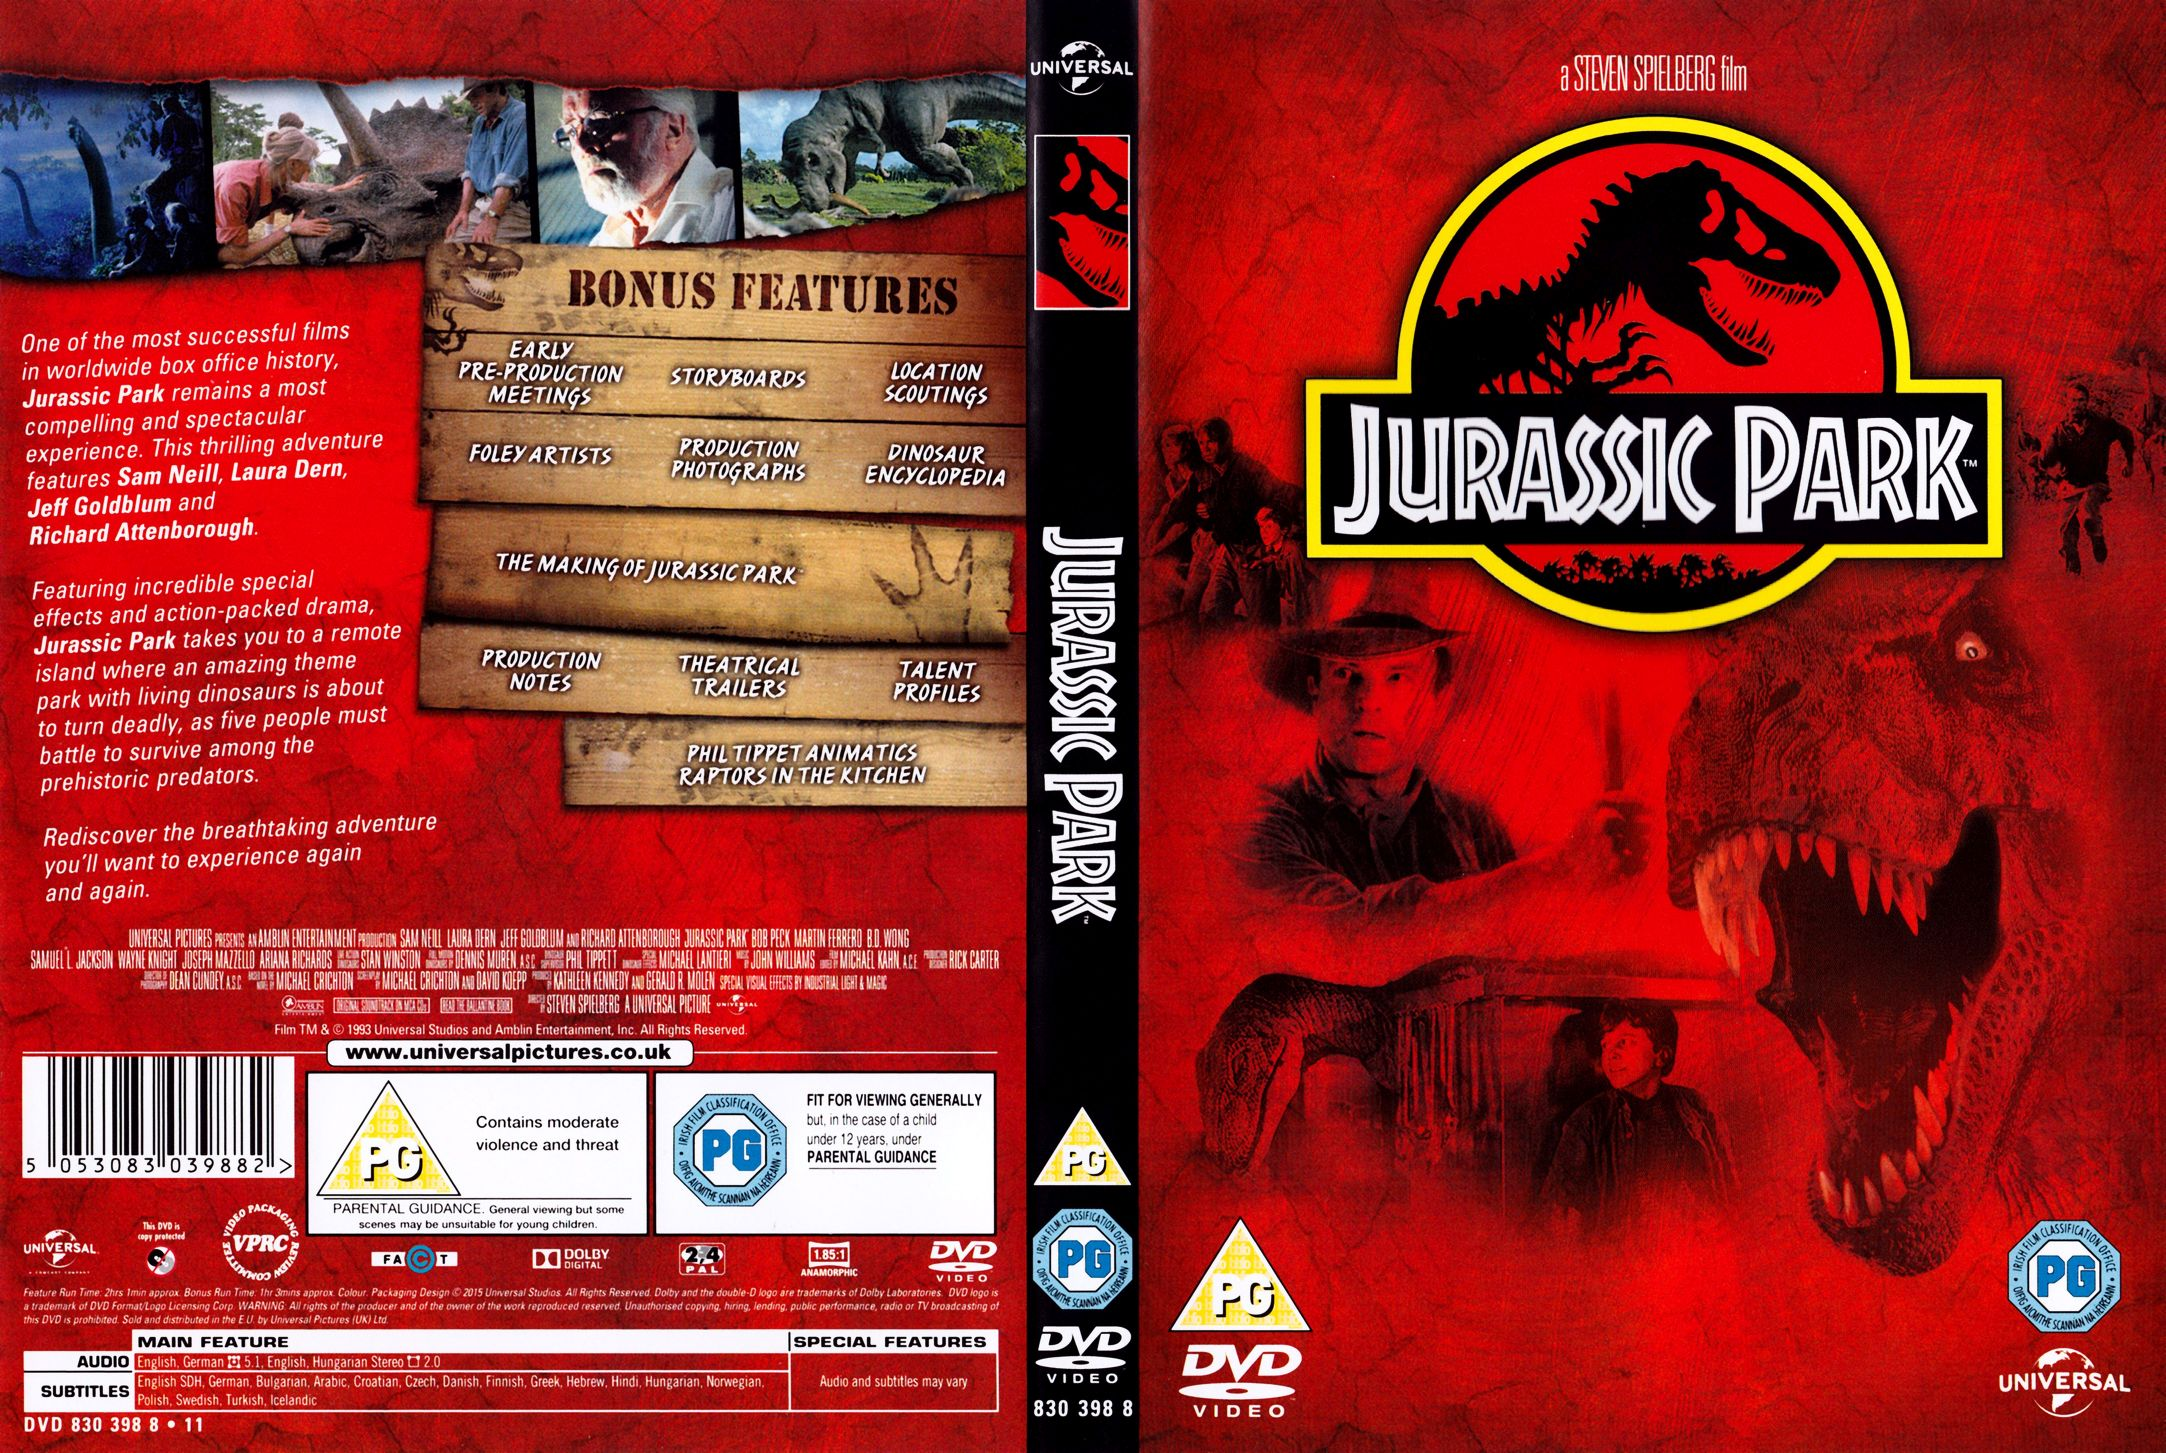 jurassic park 1993 r2 cover | DVD Covers | Cover Century